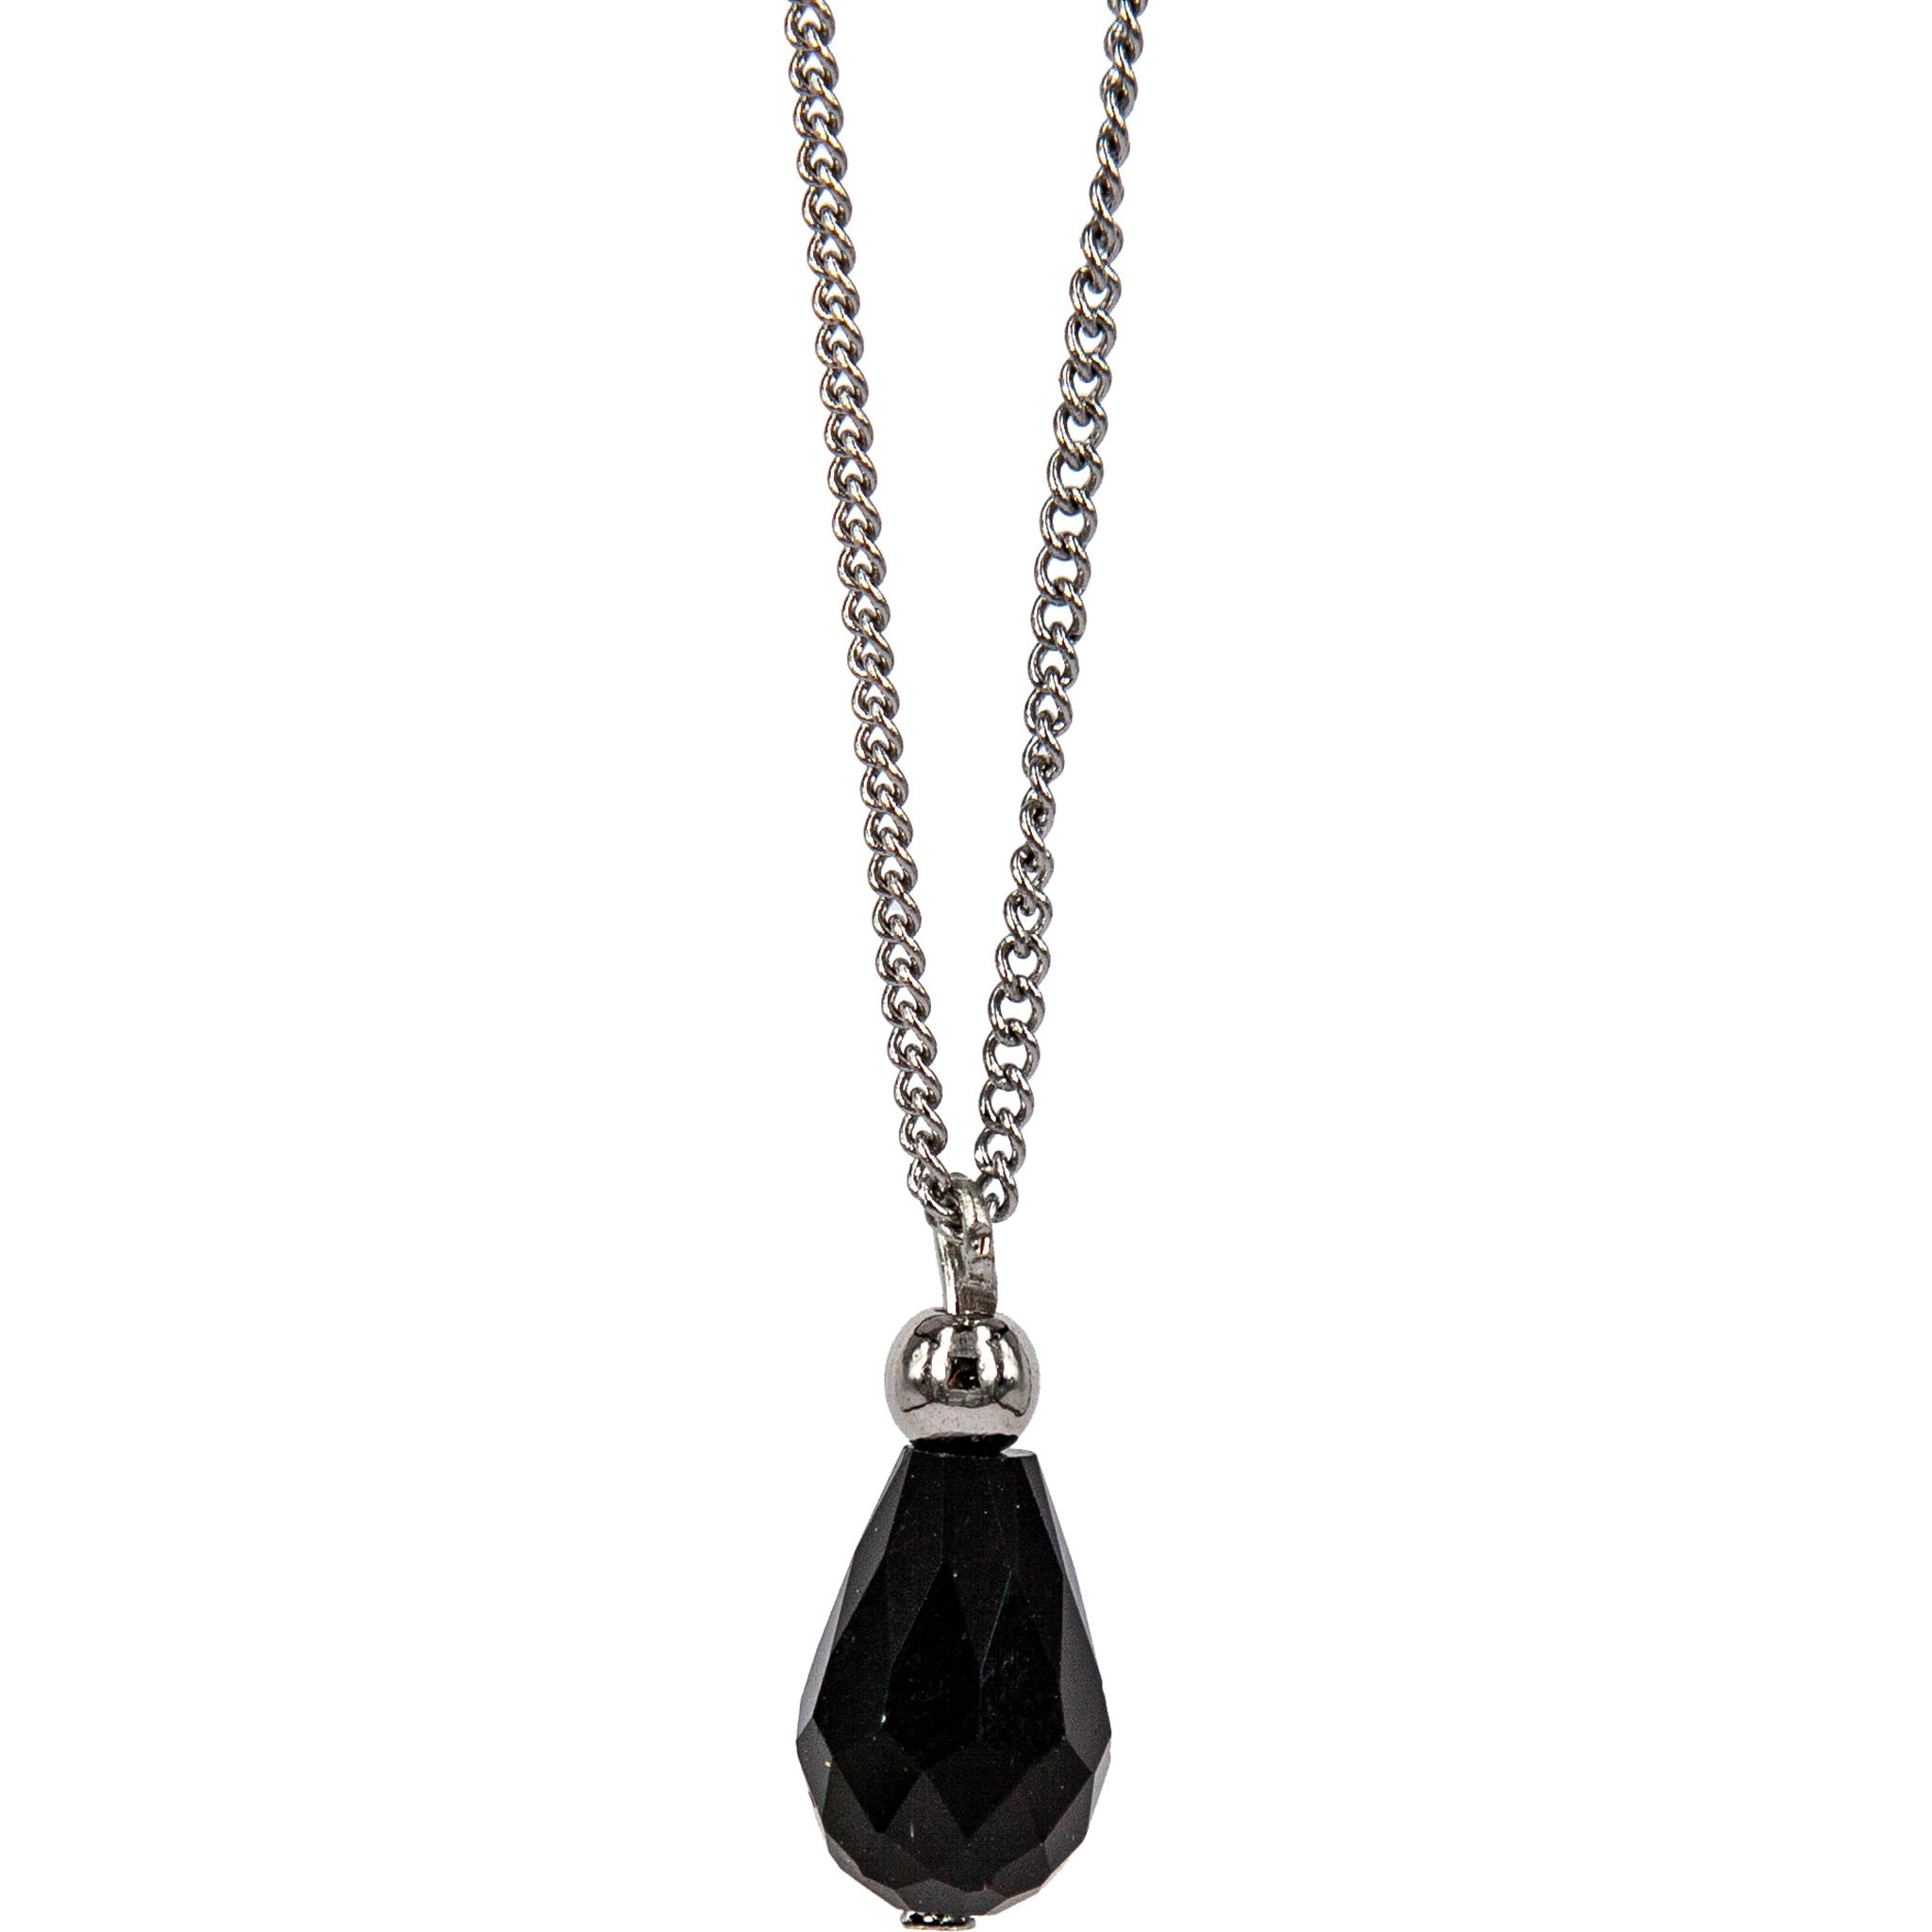 CRYSTAL DROP PENDANT STEEL CHAIN 45CM